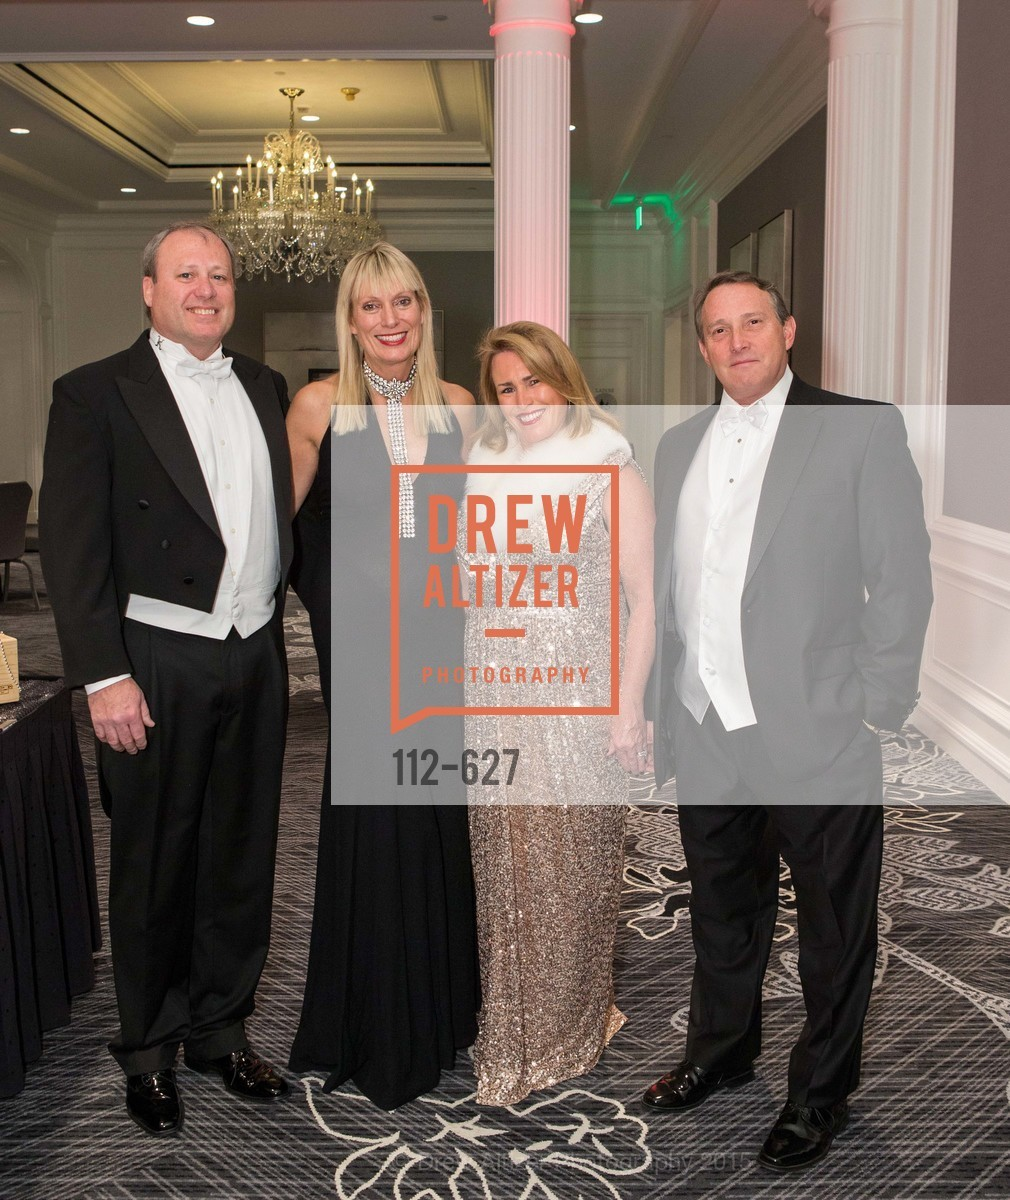 Peter Jagel, Debbie Jagel, Karen Haake, Jeff Haake, Sovereign Order Of St John of Jerusalem Knights Hospitaller Gala, Ritz Carlton San Francisco, December 5th, 2015,Drew Altizer, Drew Altizer Photography, full-service agency, private events, San Francisco photographer, photographer california